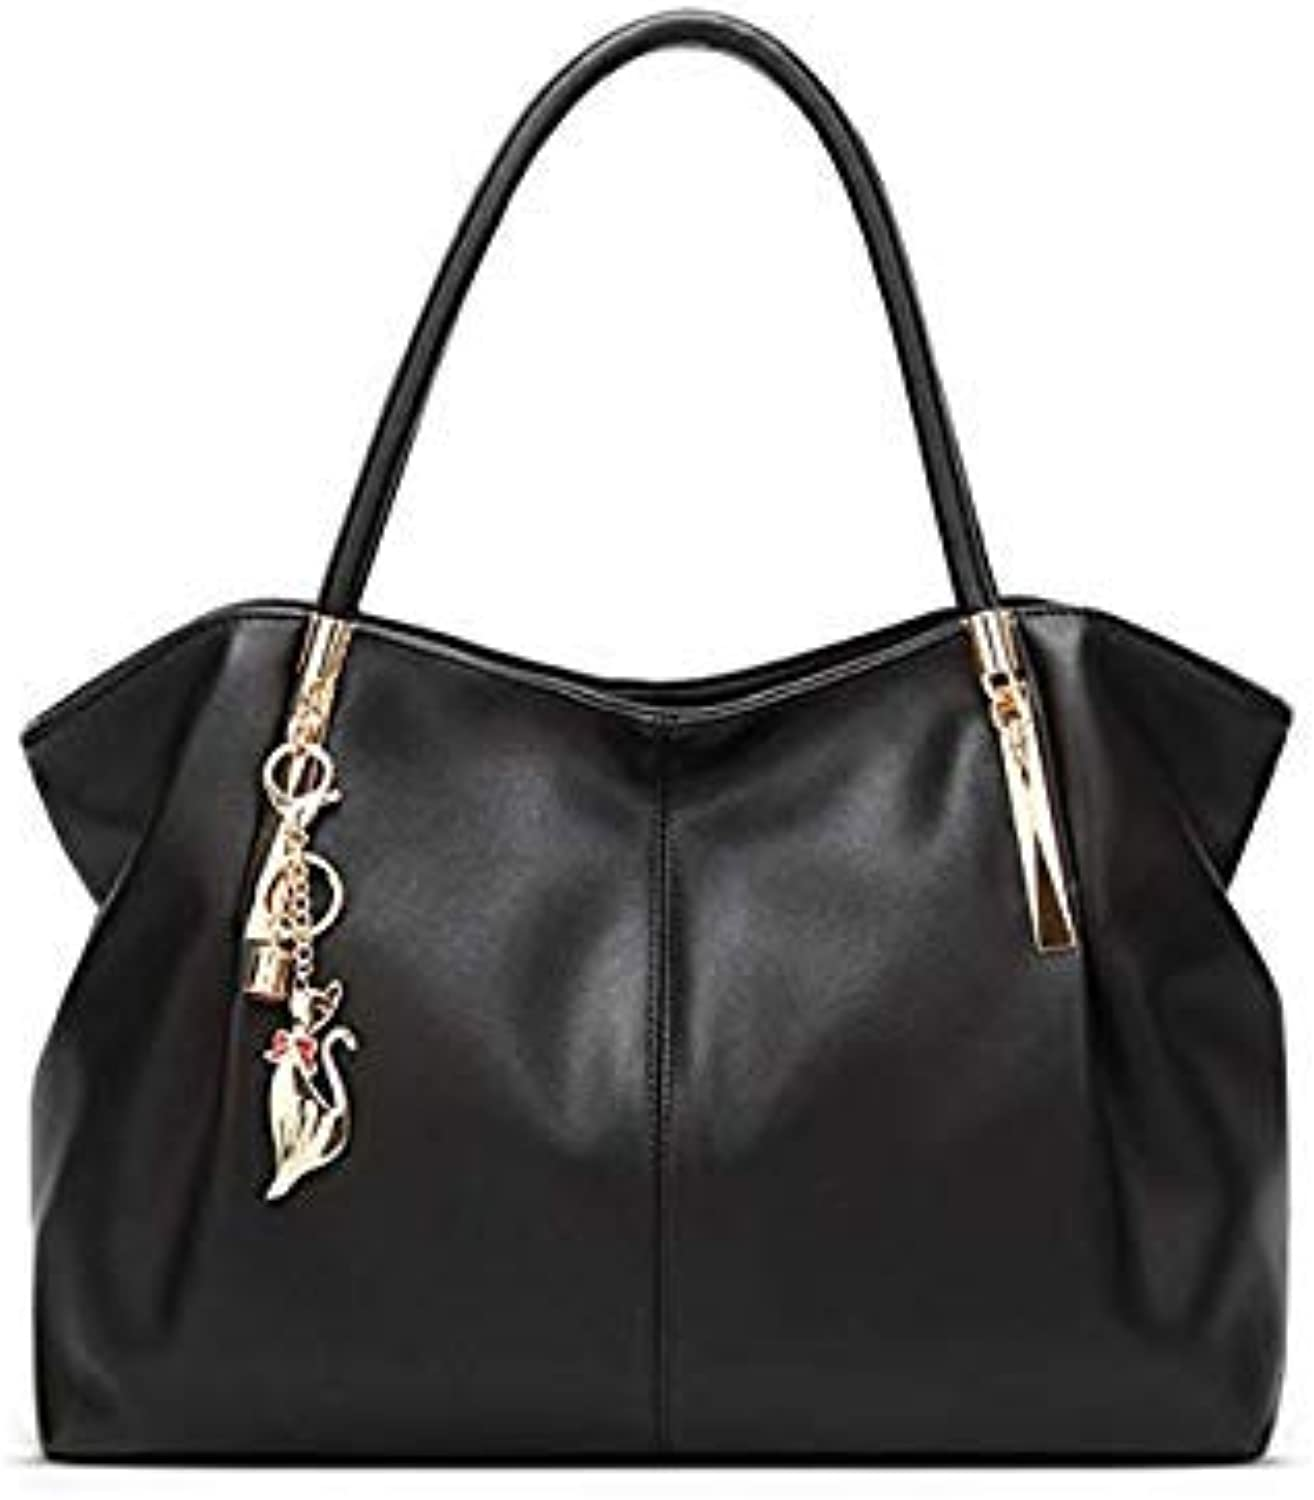 Bloomerang FangNymph Brand New Fahion Large Red Soft Leather Shoulder Hand Bags for Women Luxury Ladies Tote Bag Bucket Handbags Girls color Black About 39CM 15CM 25CM